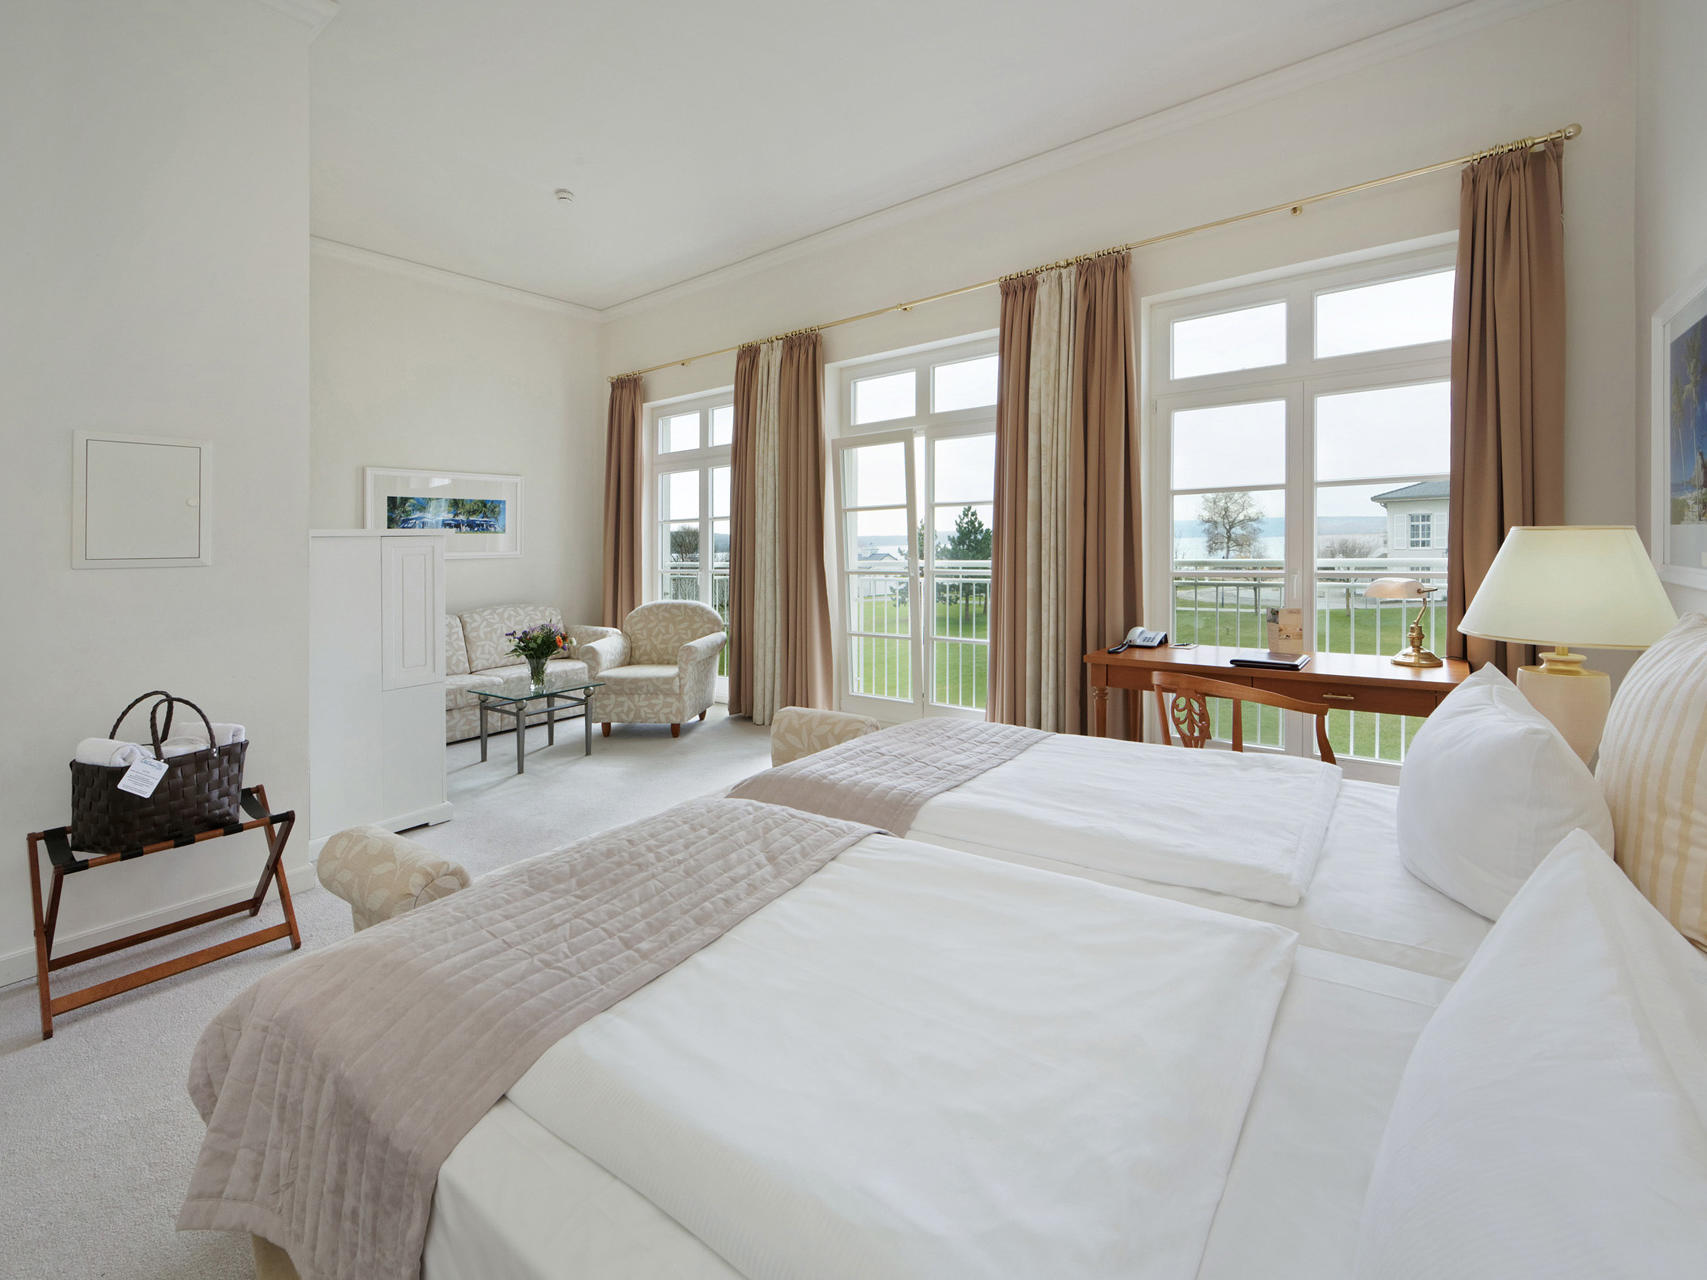 Deluxe room at Precise Resort Schwielowsee